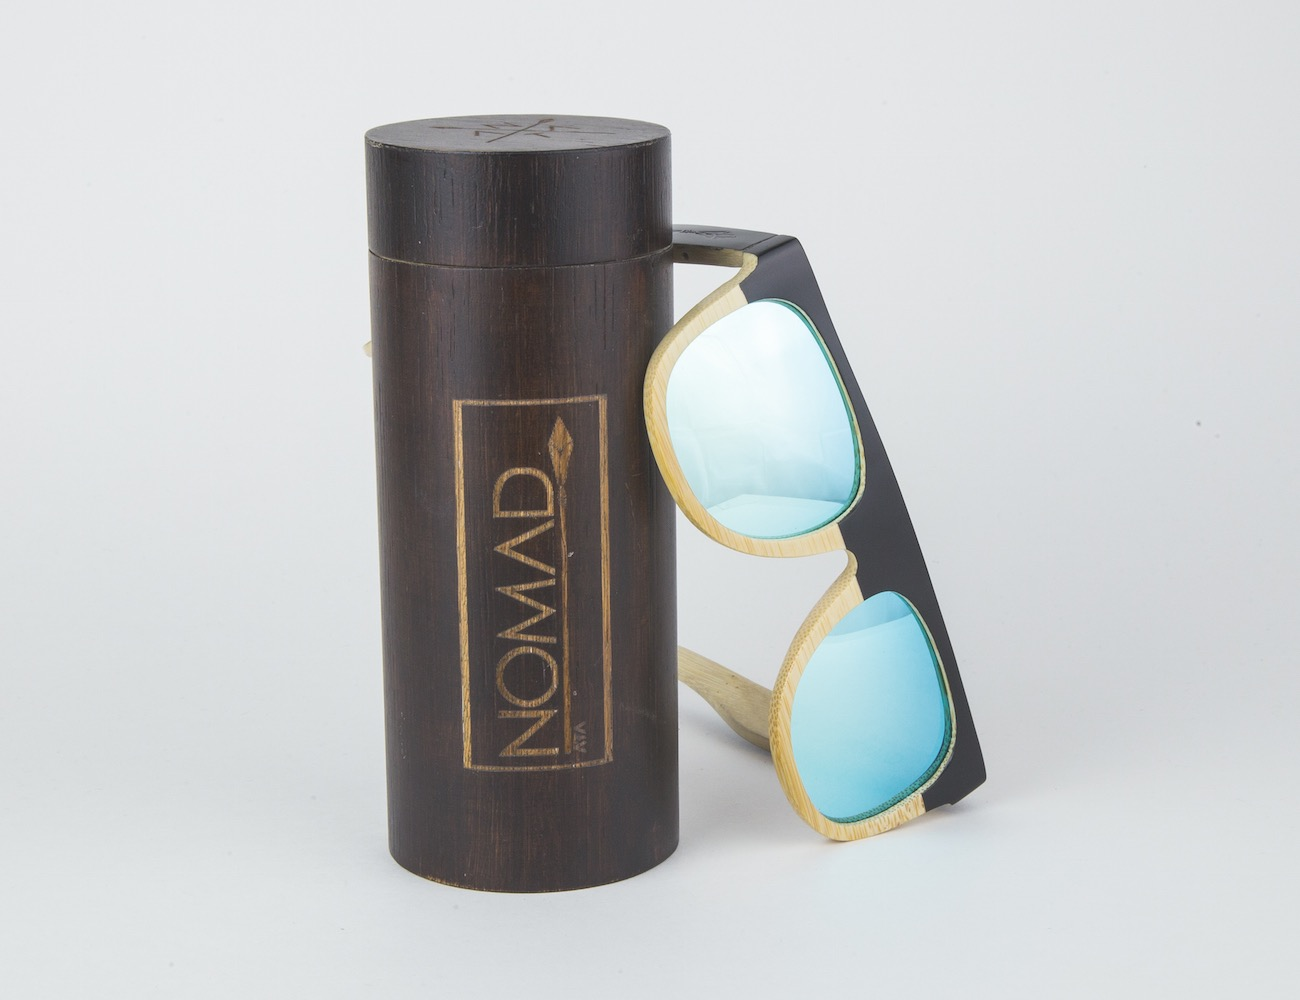 Sunglasses That Float  nomad ata bamboo sunglasses that float review the gadget flow